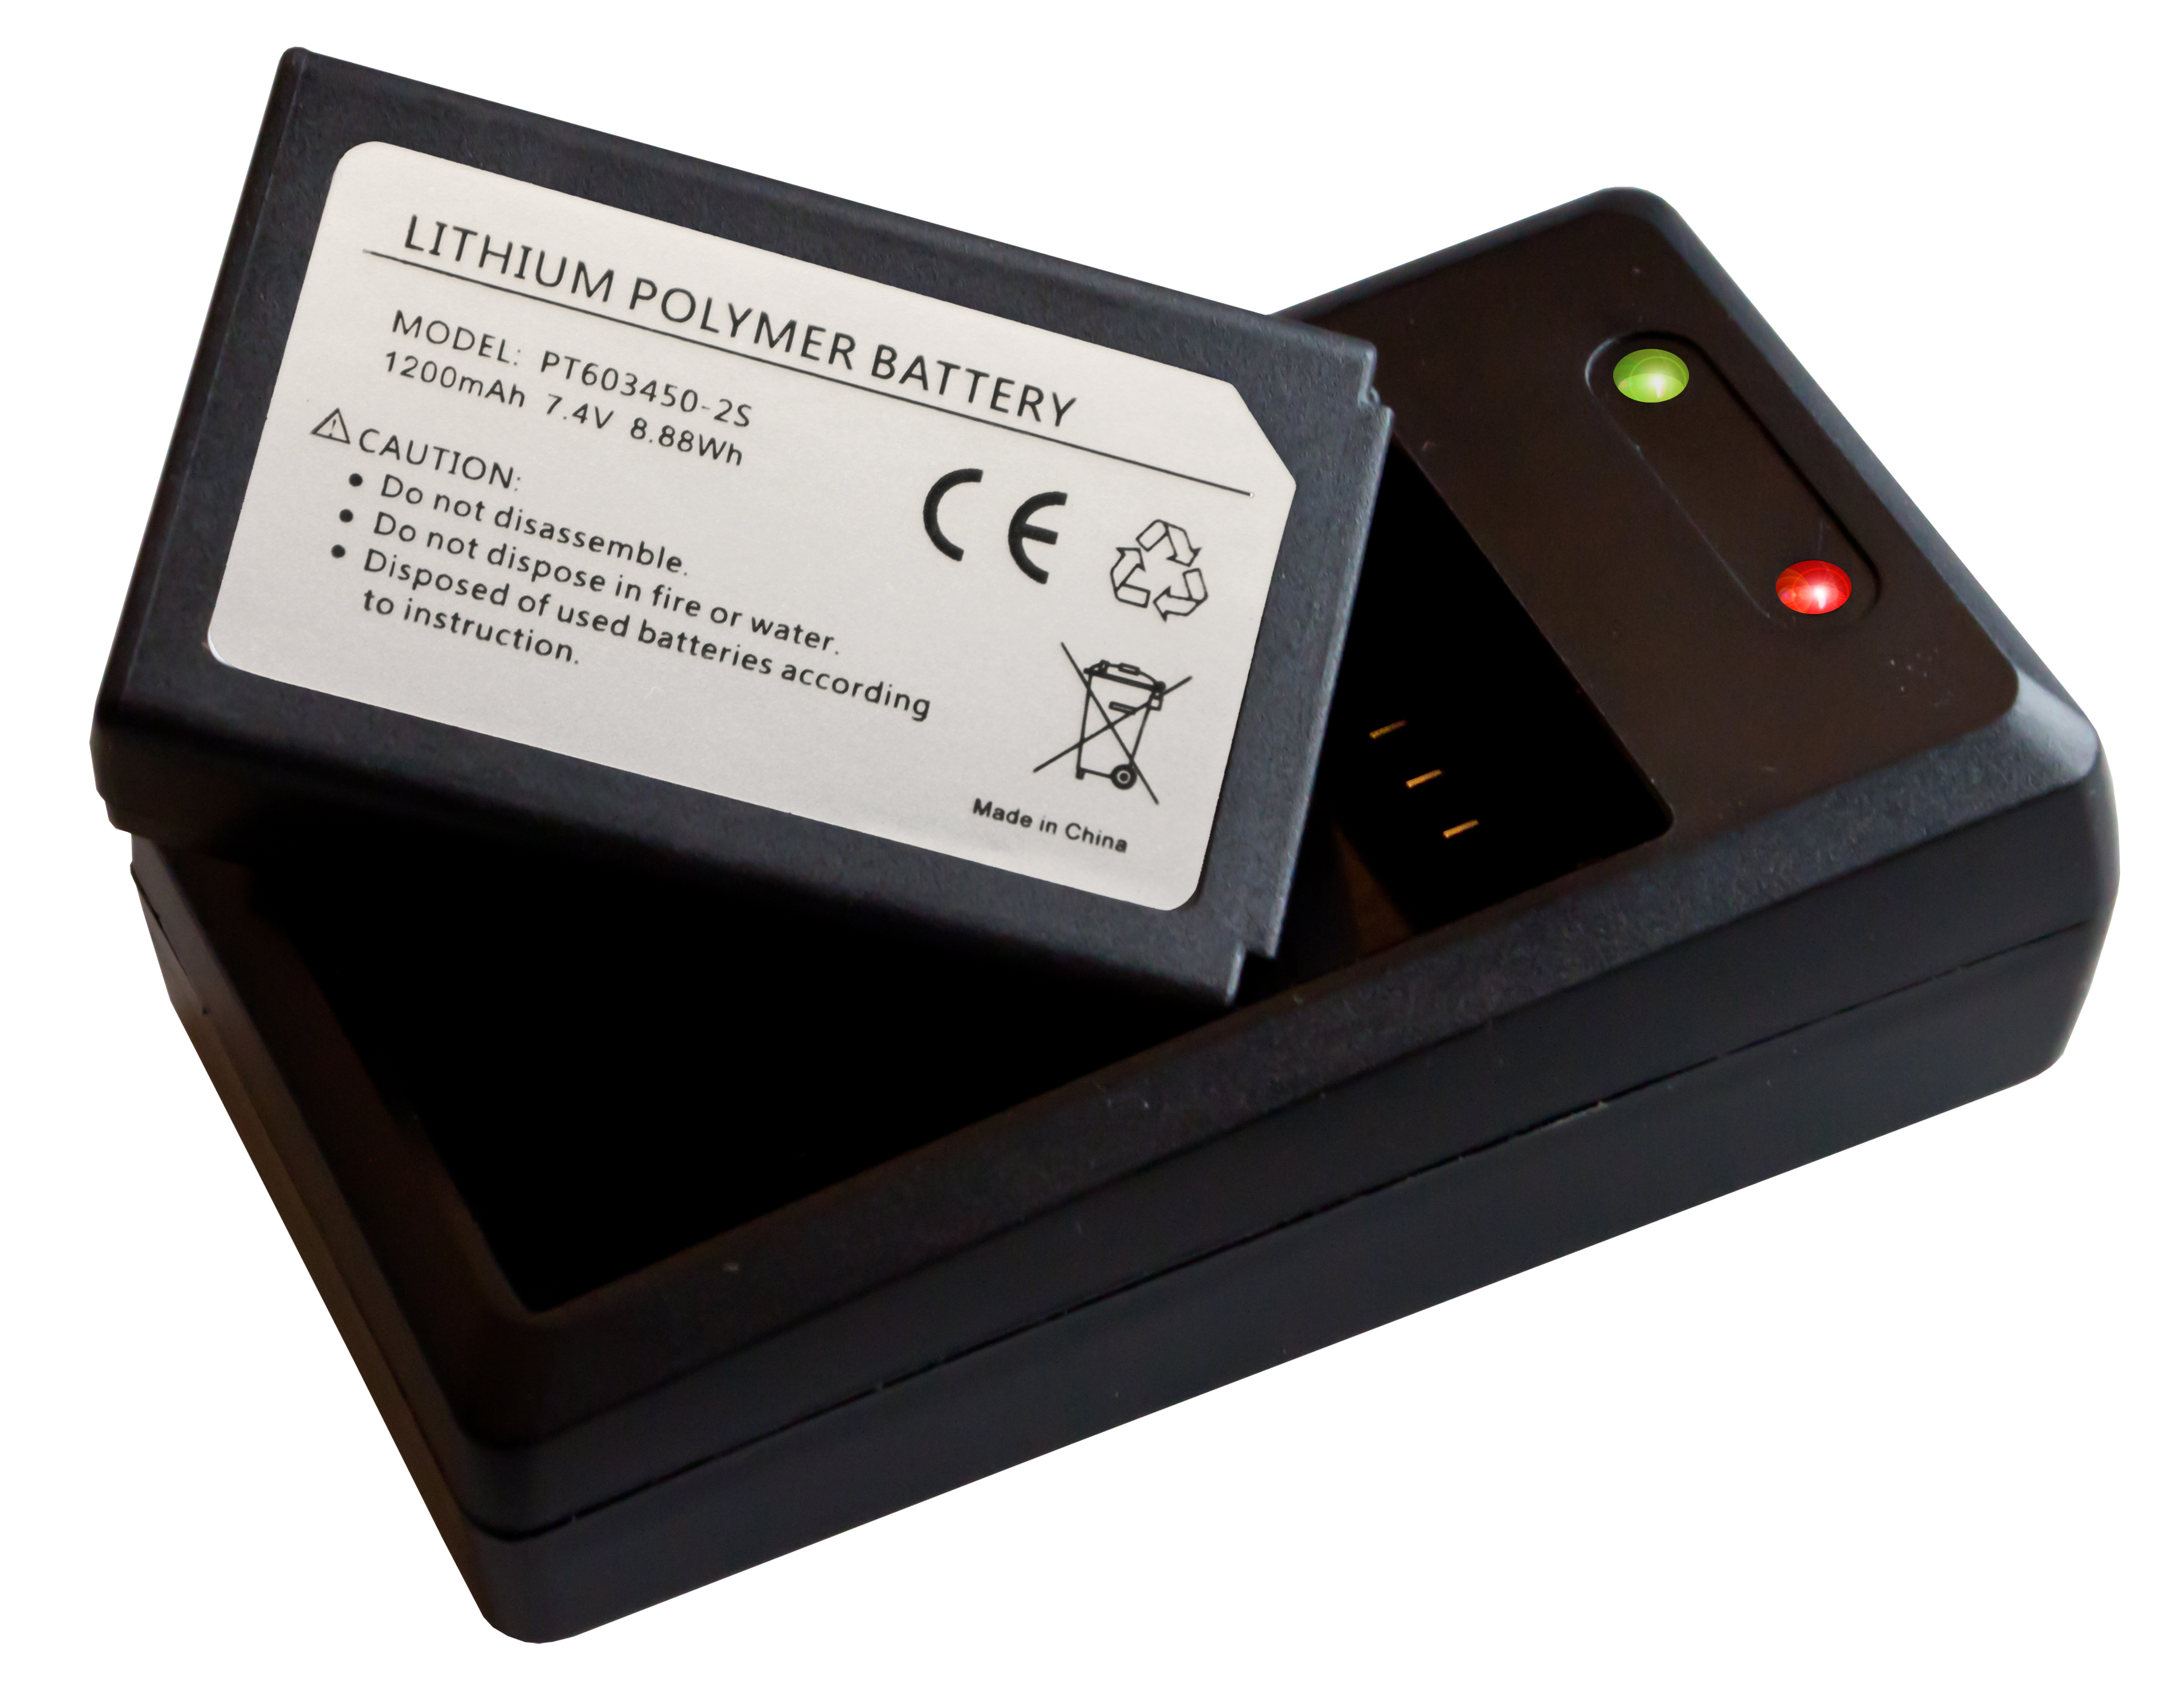 «PeakTech® P 3440 BC» charger and spare battery for PeakTech 3440